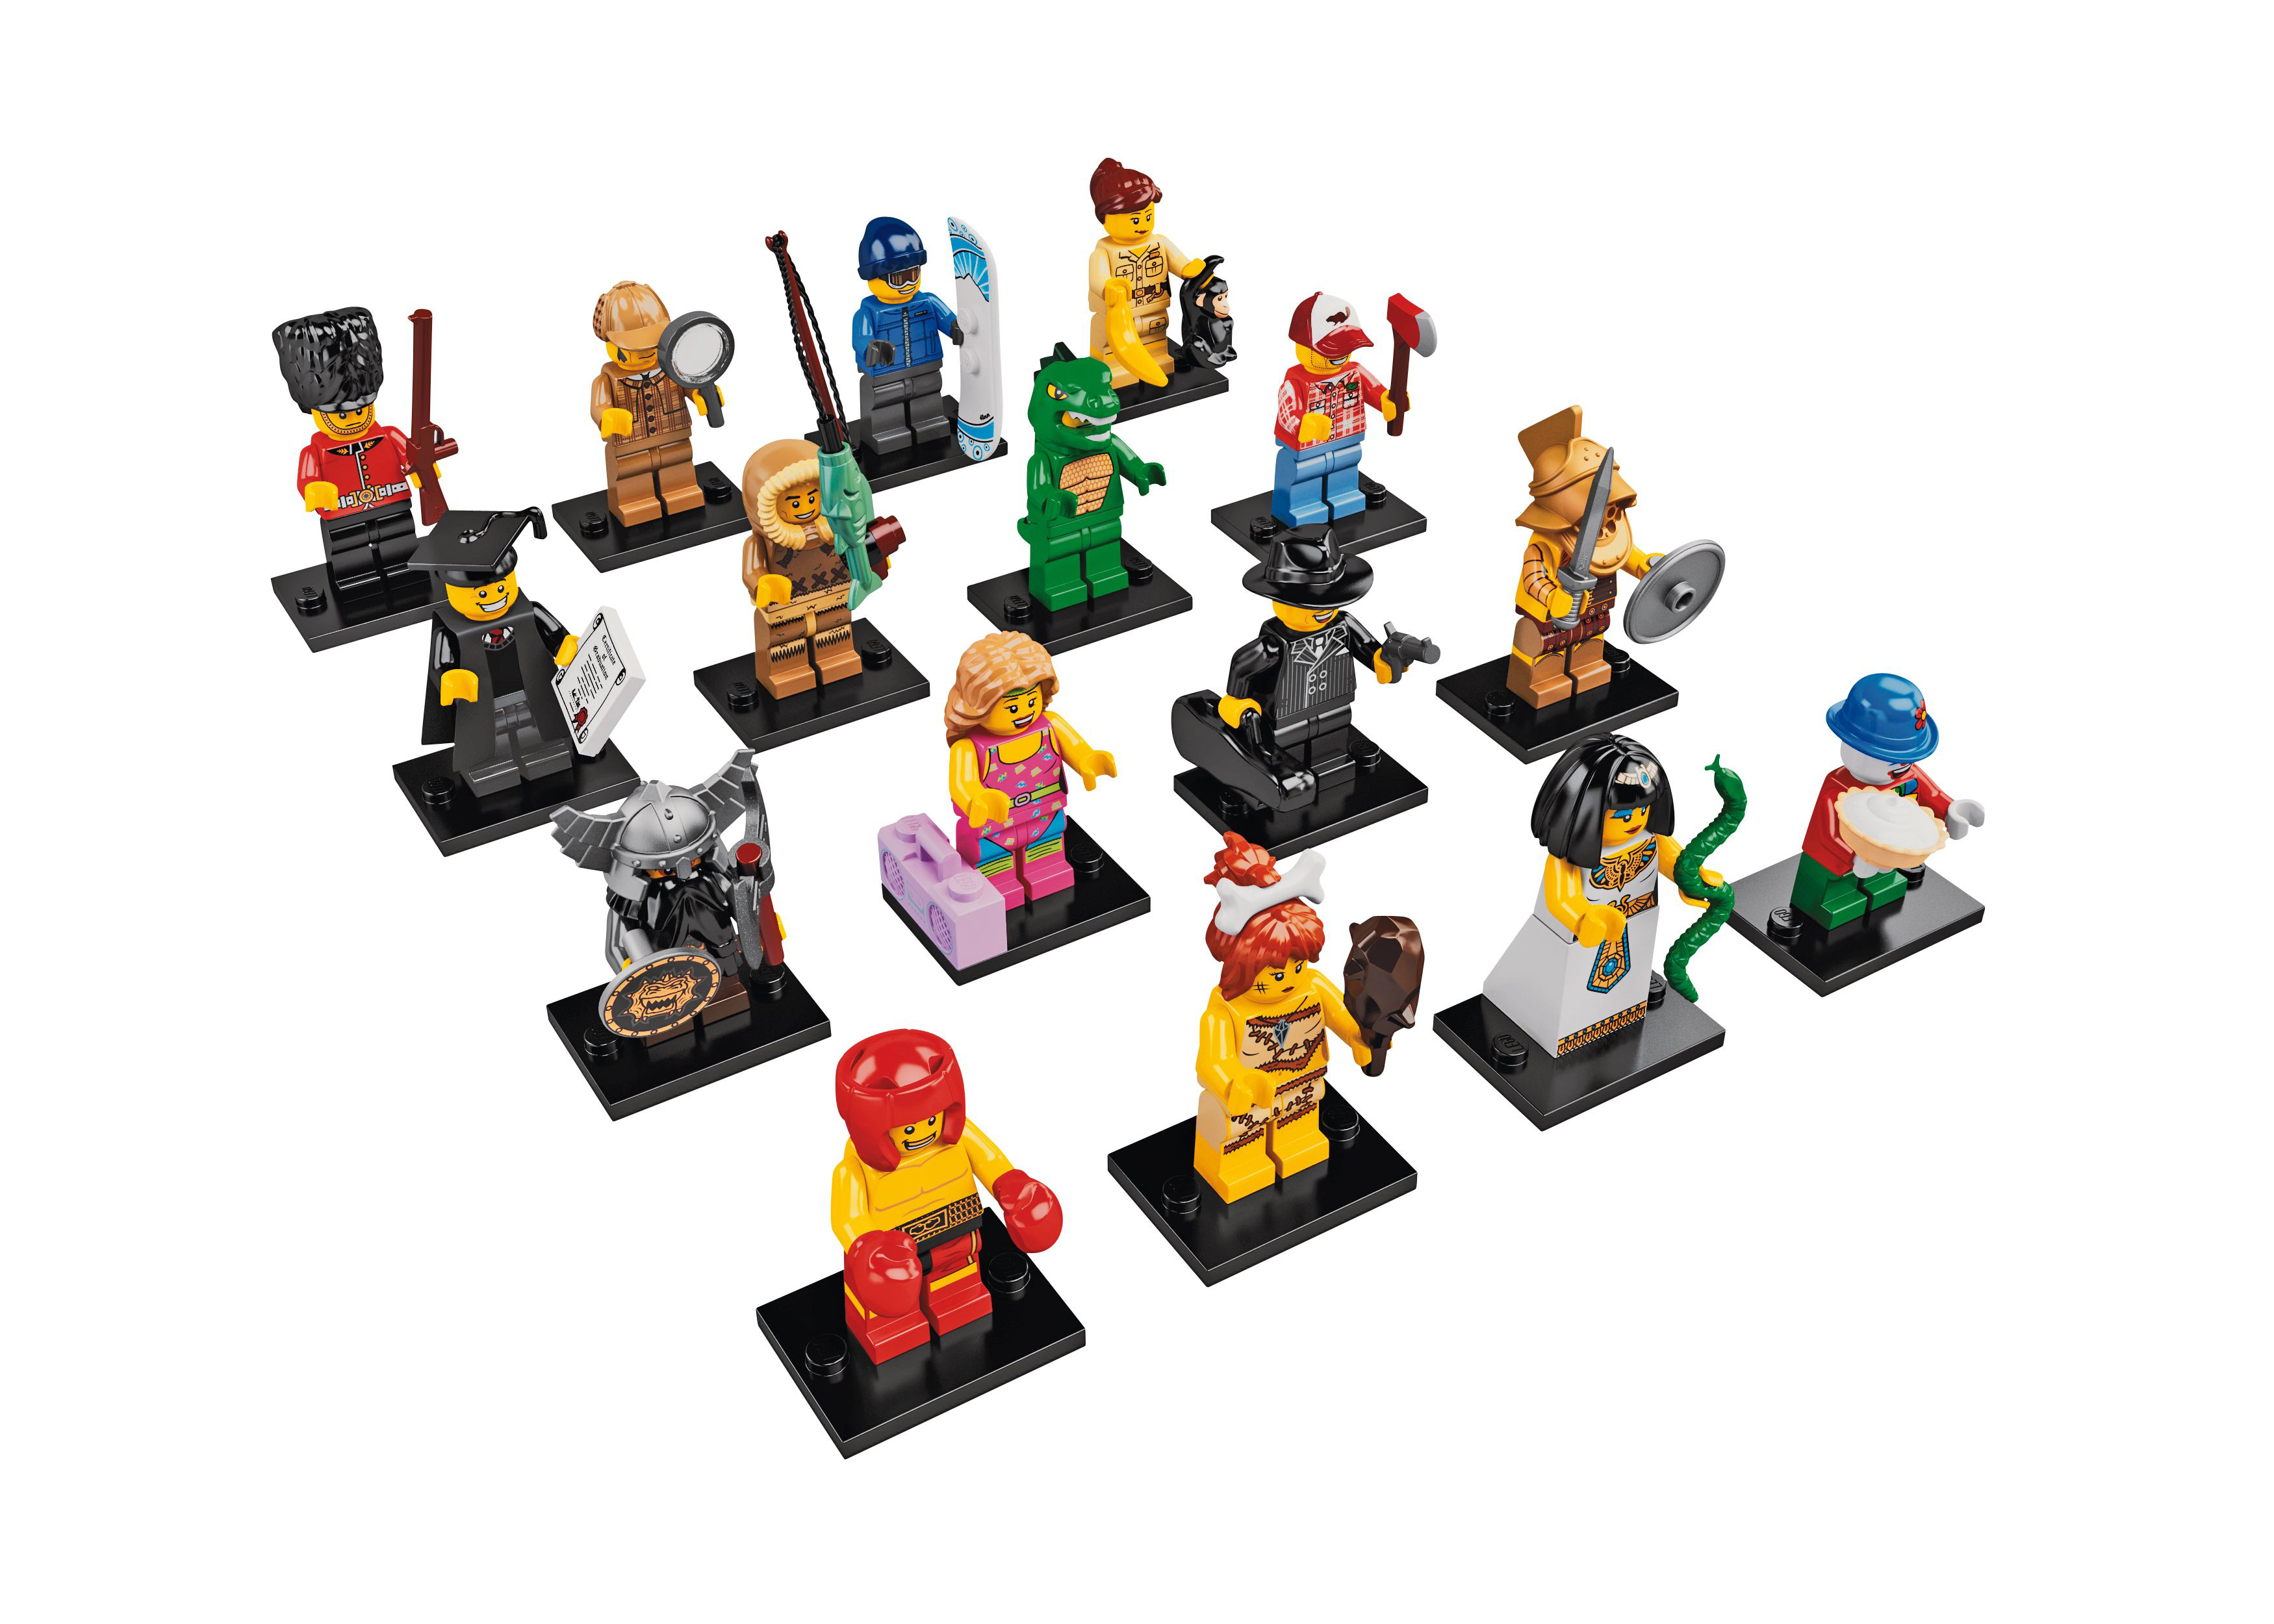 item 8805 pieces 105 each minifigure counted once minifigures 16 price